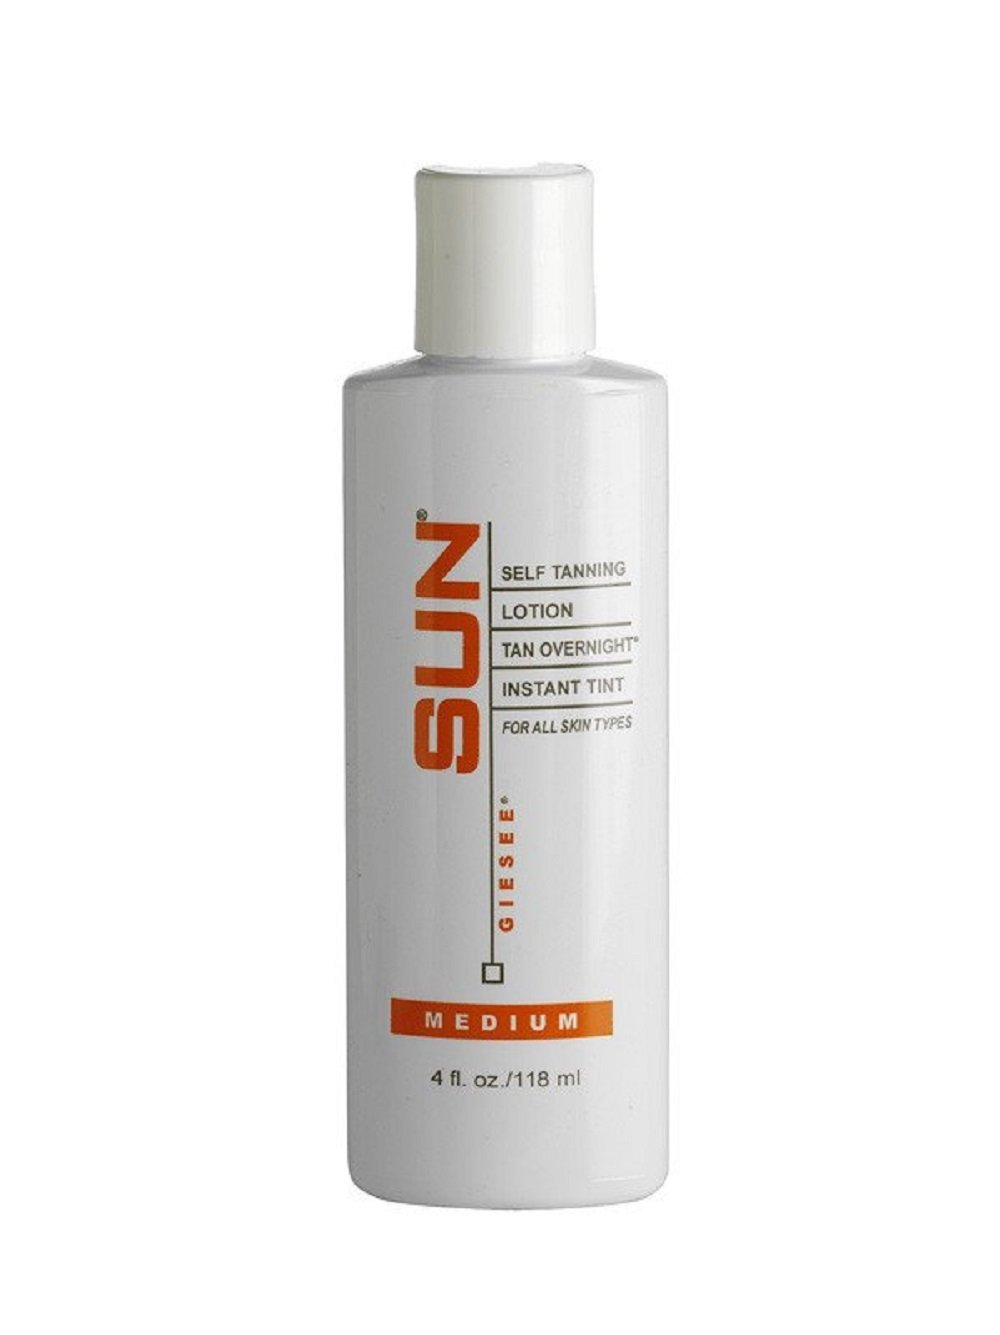 Sun Self Tanning Lotion Tan Overnight Instant Tint - Medium - 4 oz.